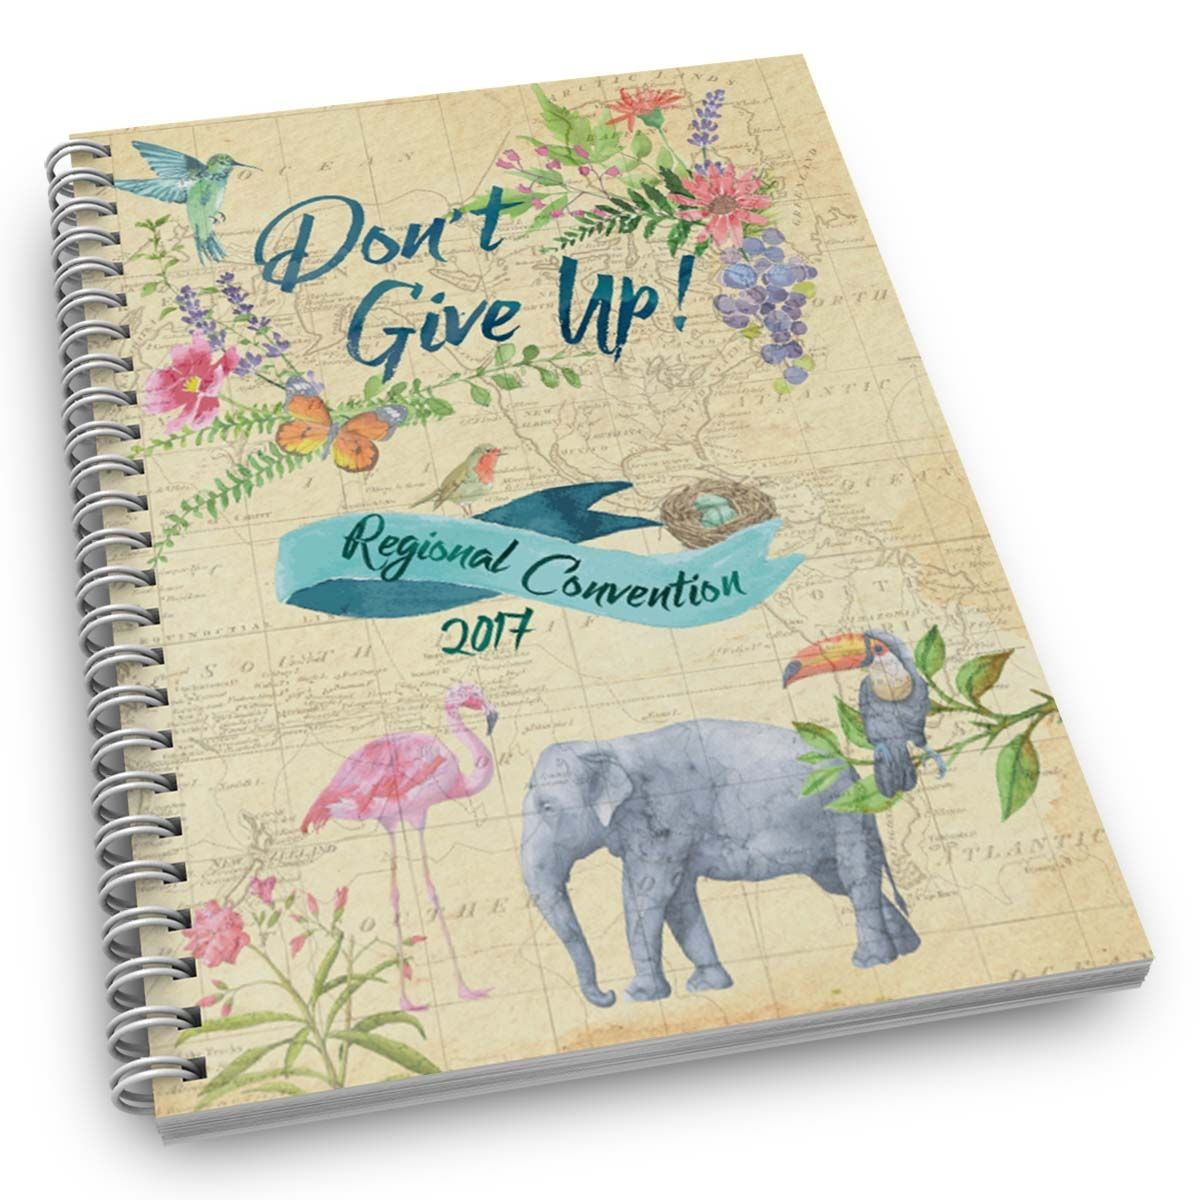 Notebook For Love Never Fails International Convention Of Jehovah S Witnesses